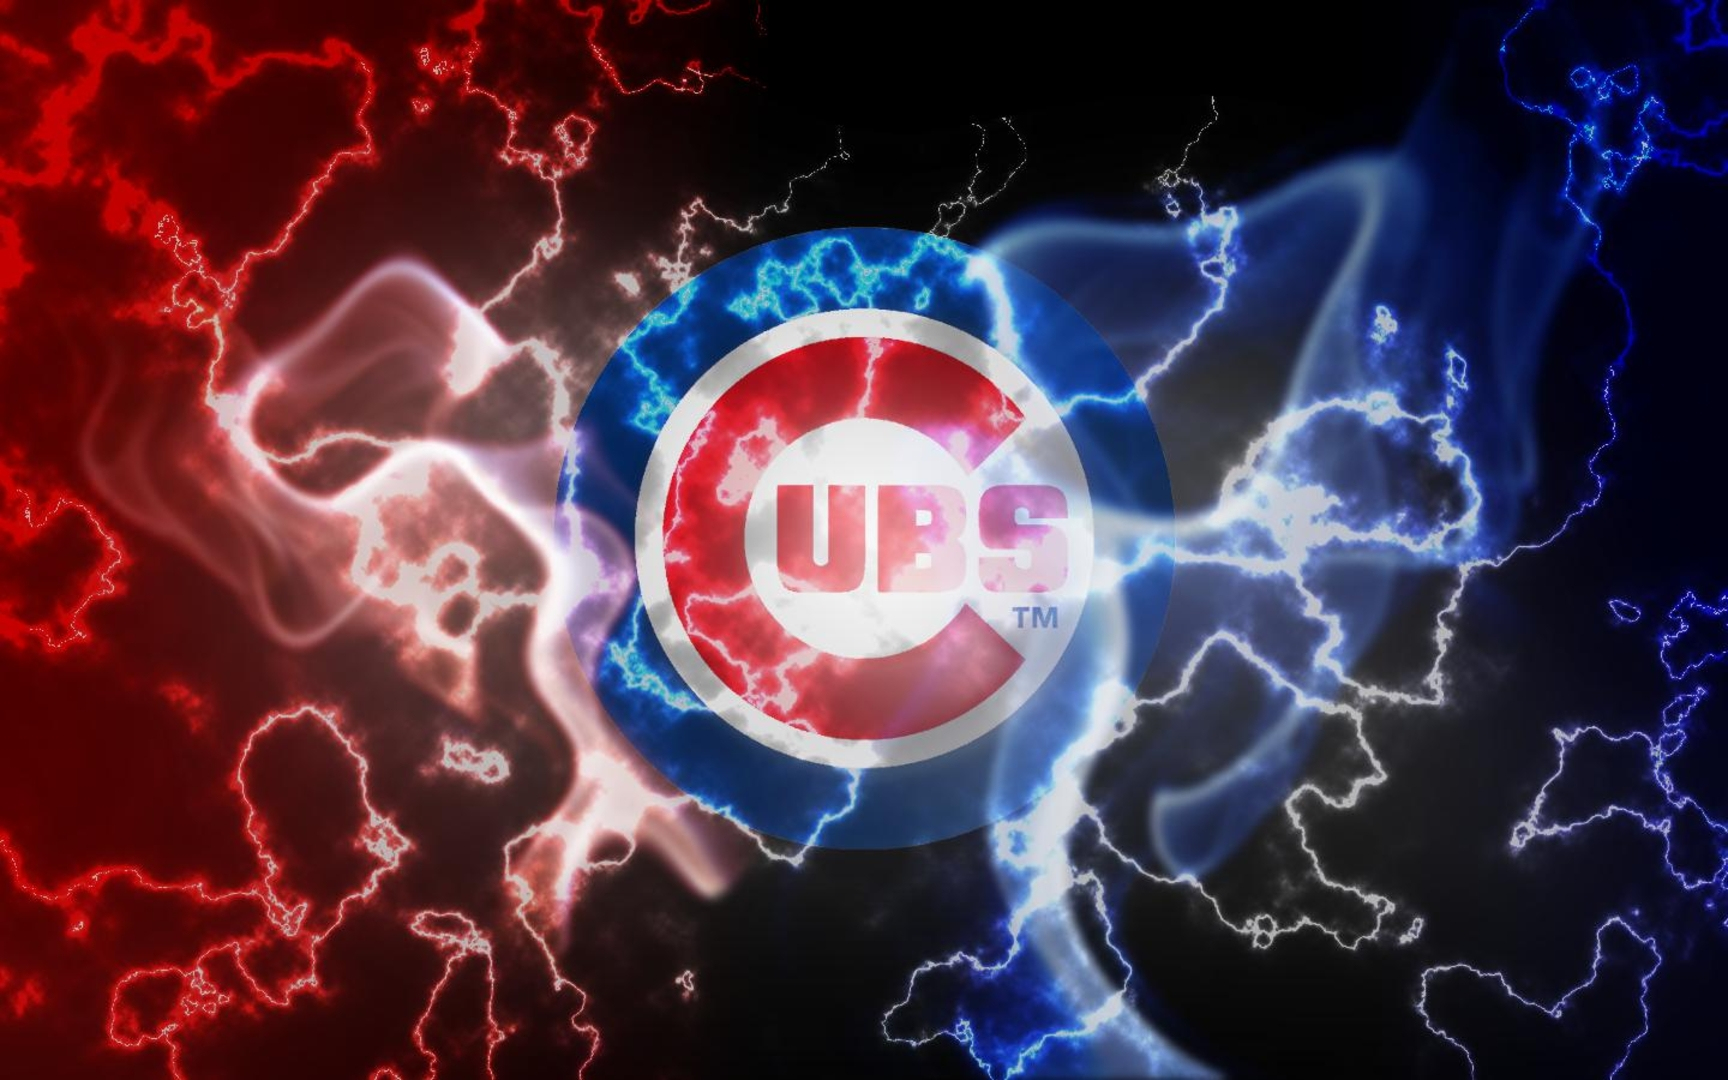 1920x1080 pixel Desktop Wallpapers Chicago Cubs Logo Wallpaper By 1728x1080